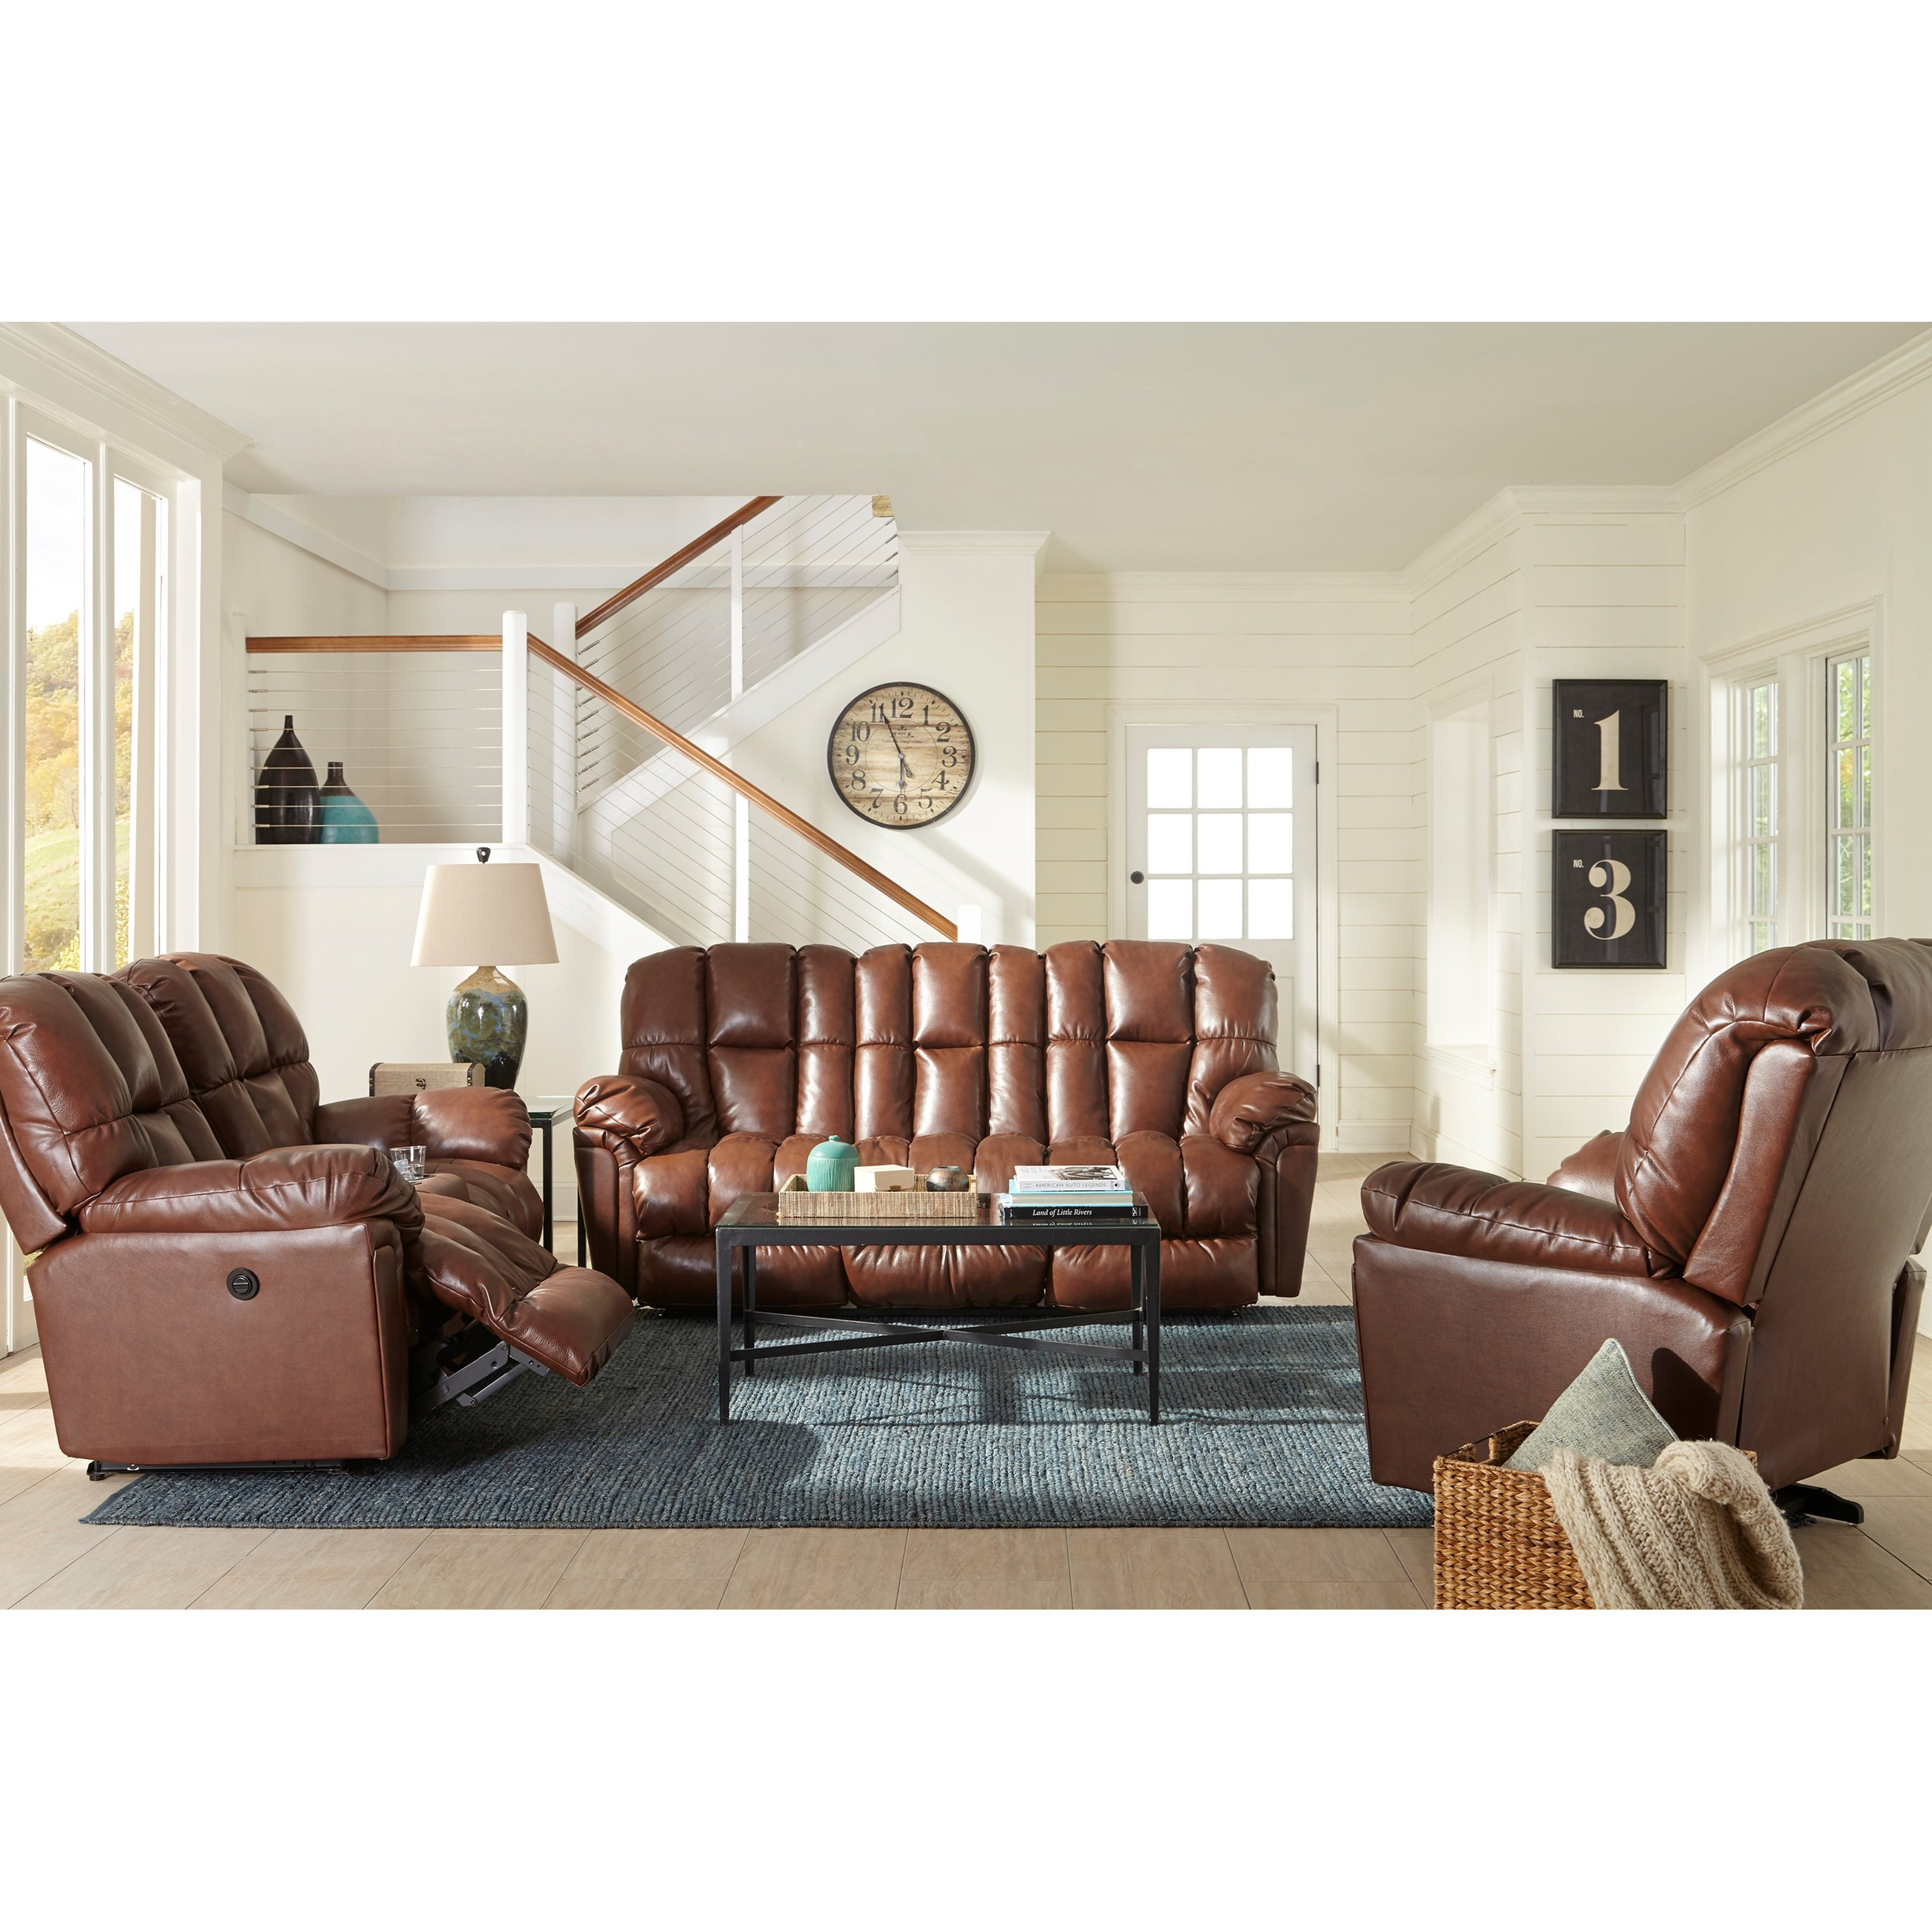 Best Home Furnishings Lucas Plush Space Saver Reclining Loveseat With Drink Console Fashion